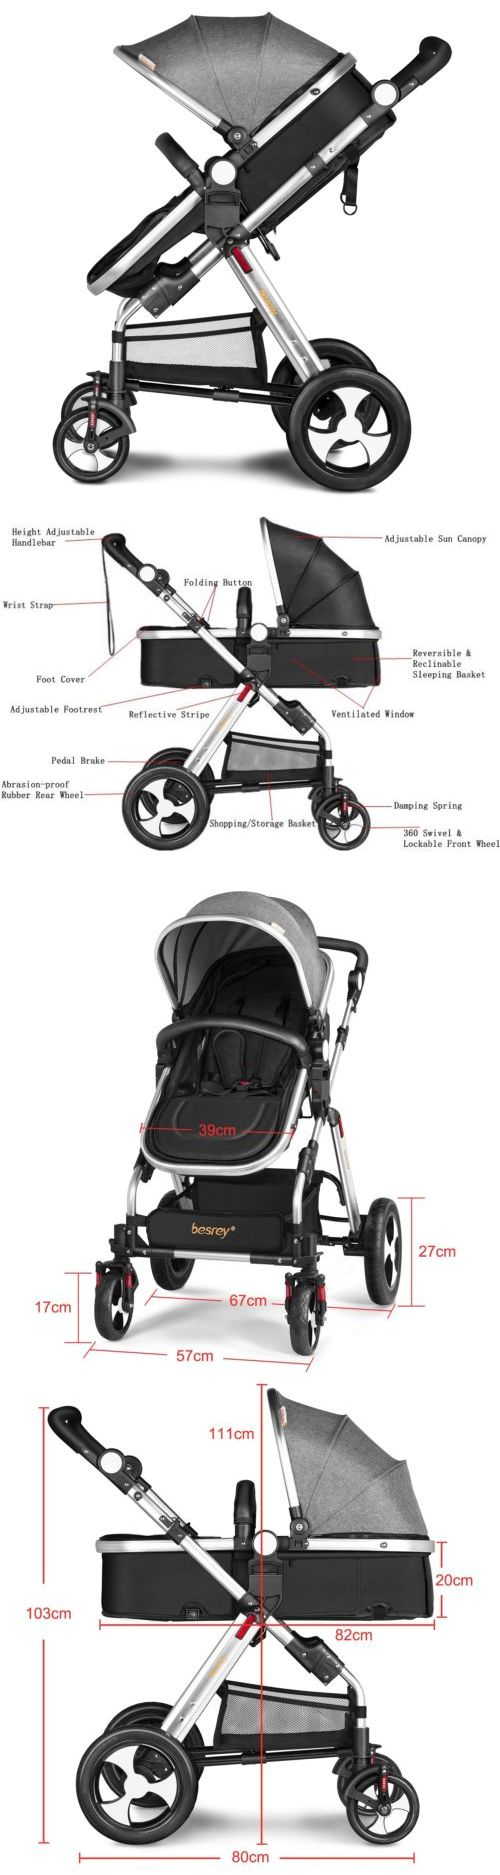 Baby: New Besrey Baby Carriage Foldable Travel System Stroller Buggy Pushchair Pram -> BUY IT NOW ONLY: $189.99 on eBay!